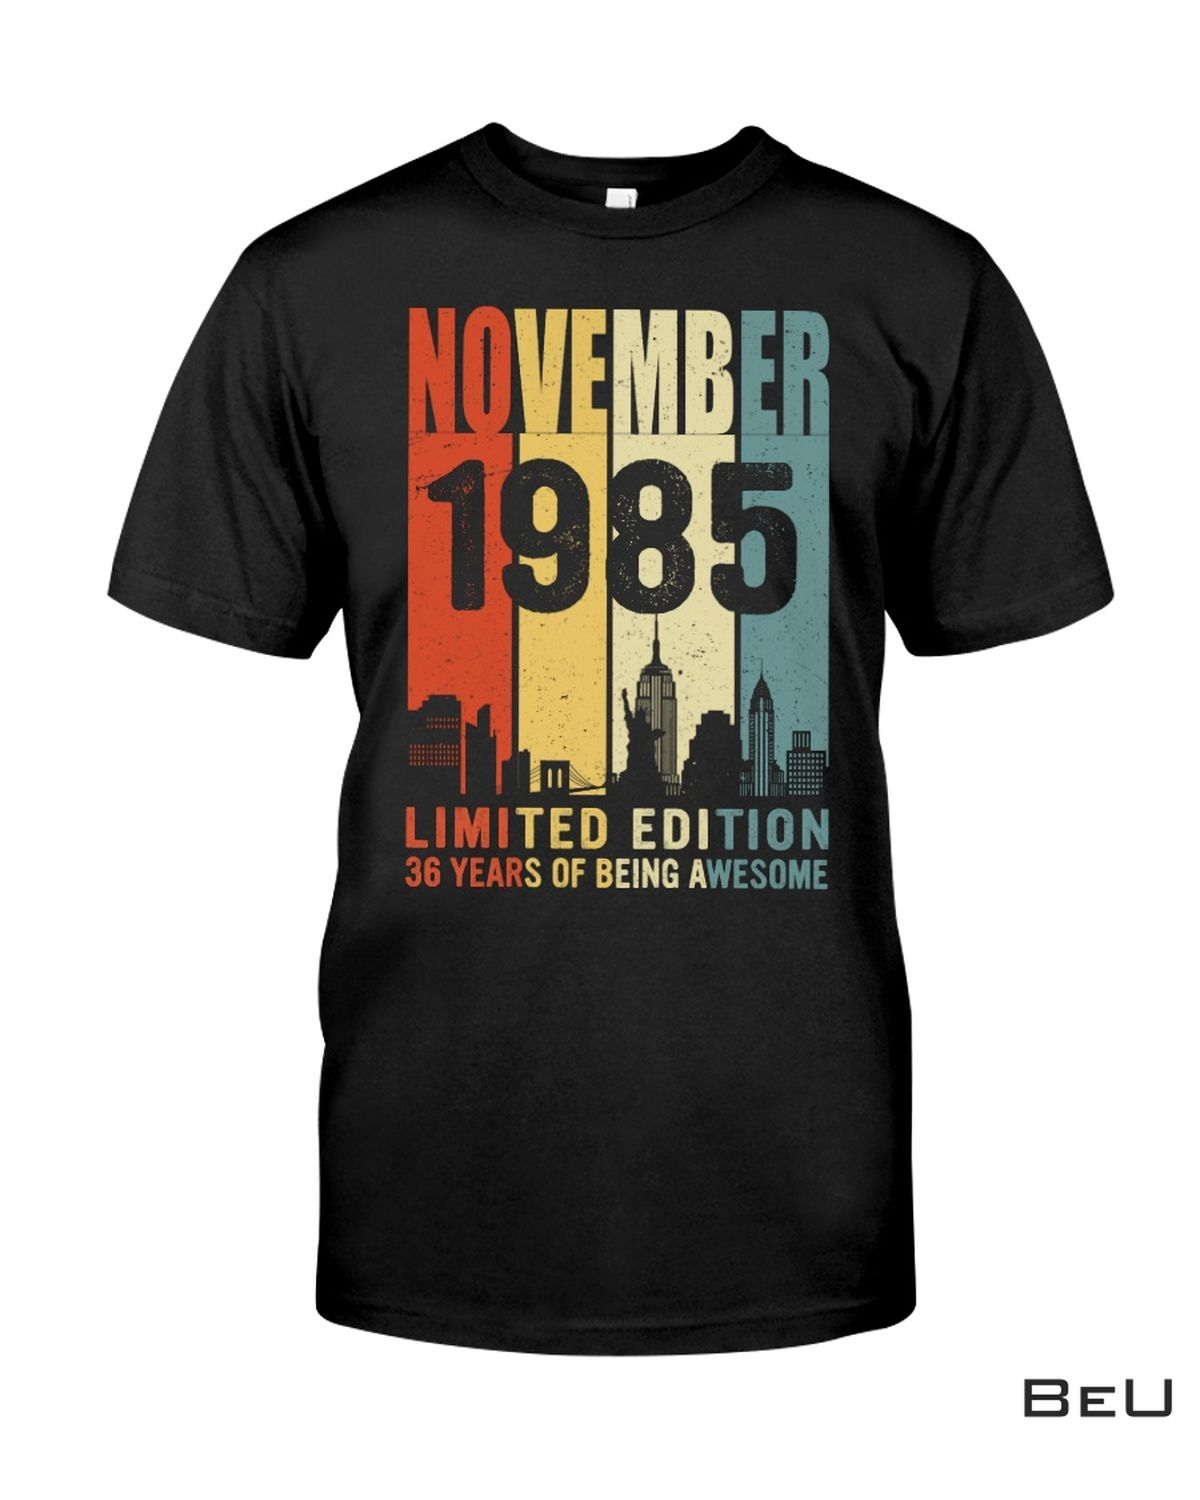 November 1985 Limited Edition 36 Years Of Being Awesome Shirt, hoodie, tank top